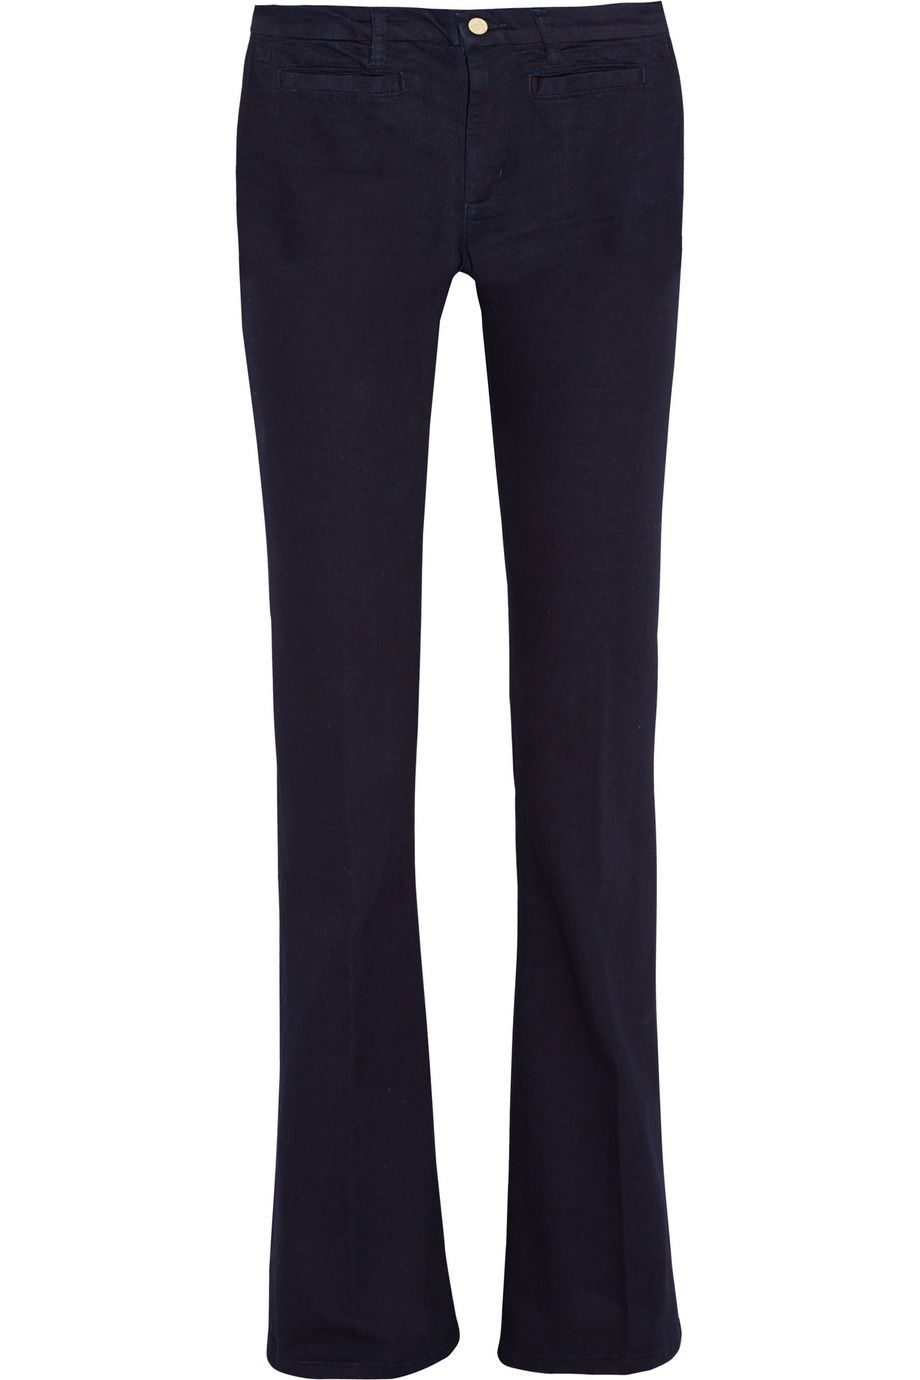 "<p>MIH Jeans Marrakesh Jeans, $89&#x3B; <a href=""http://www.theoutnet.com/en-US/product/MiH-Jeans/M..."">theoutnet.com</a> </p>"